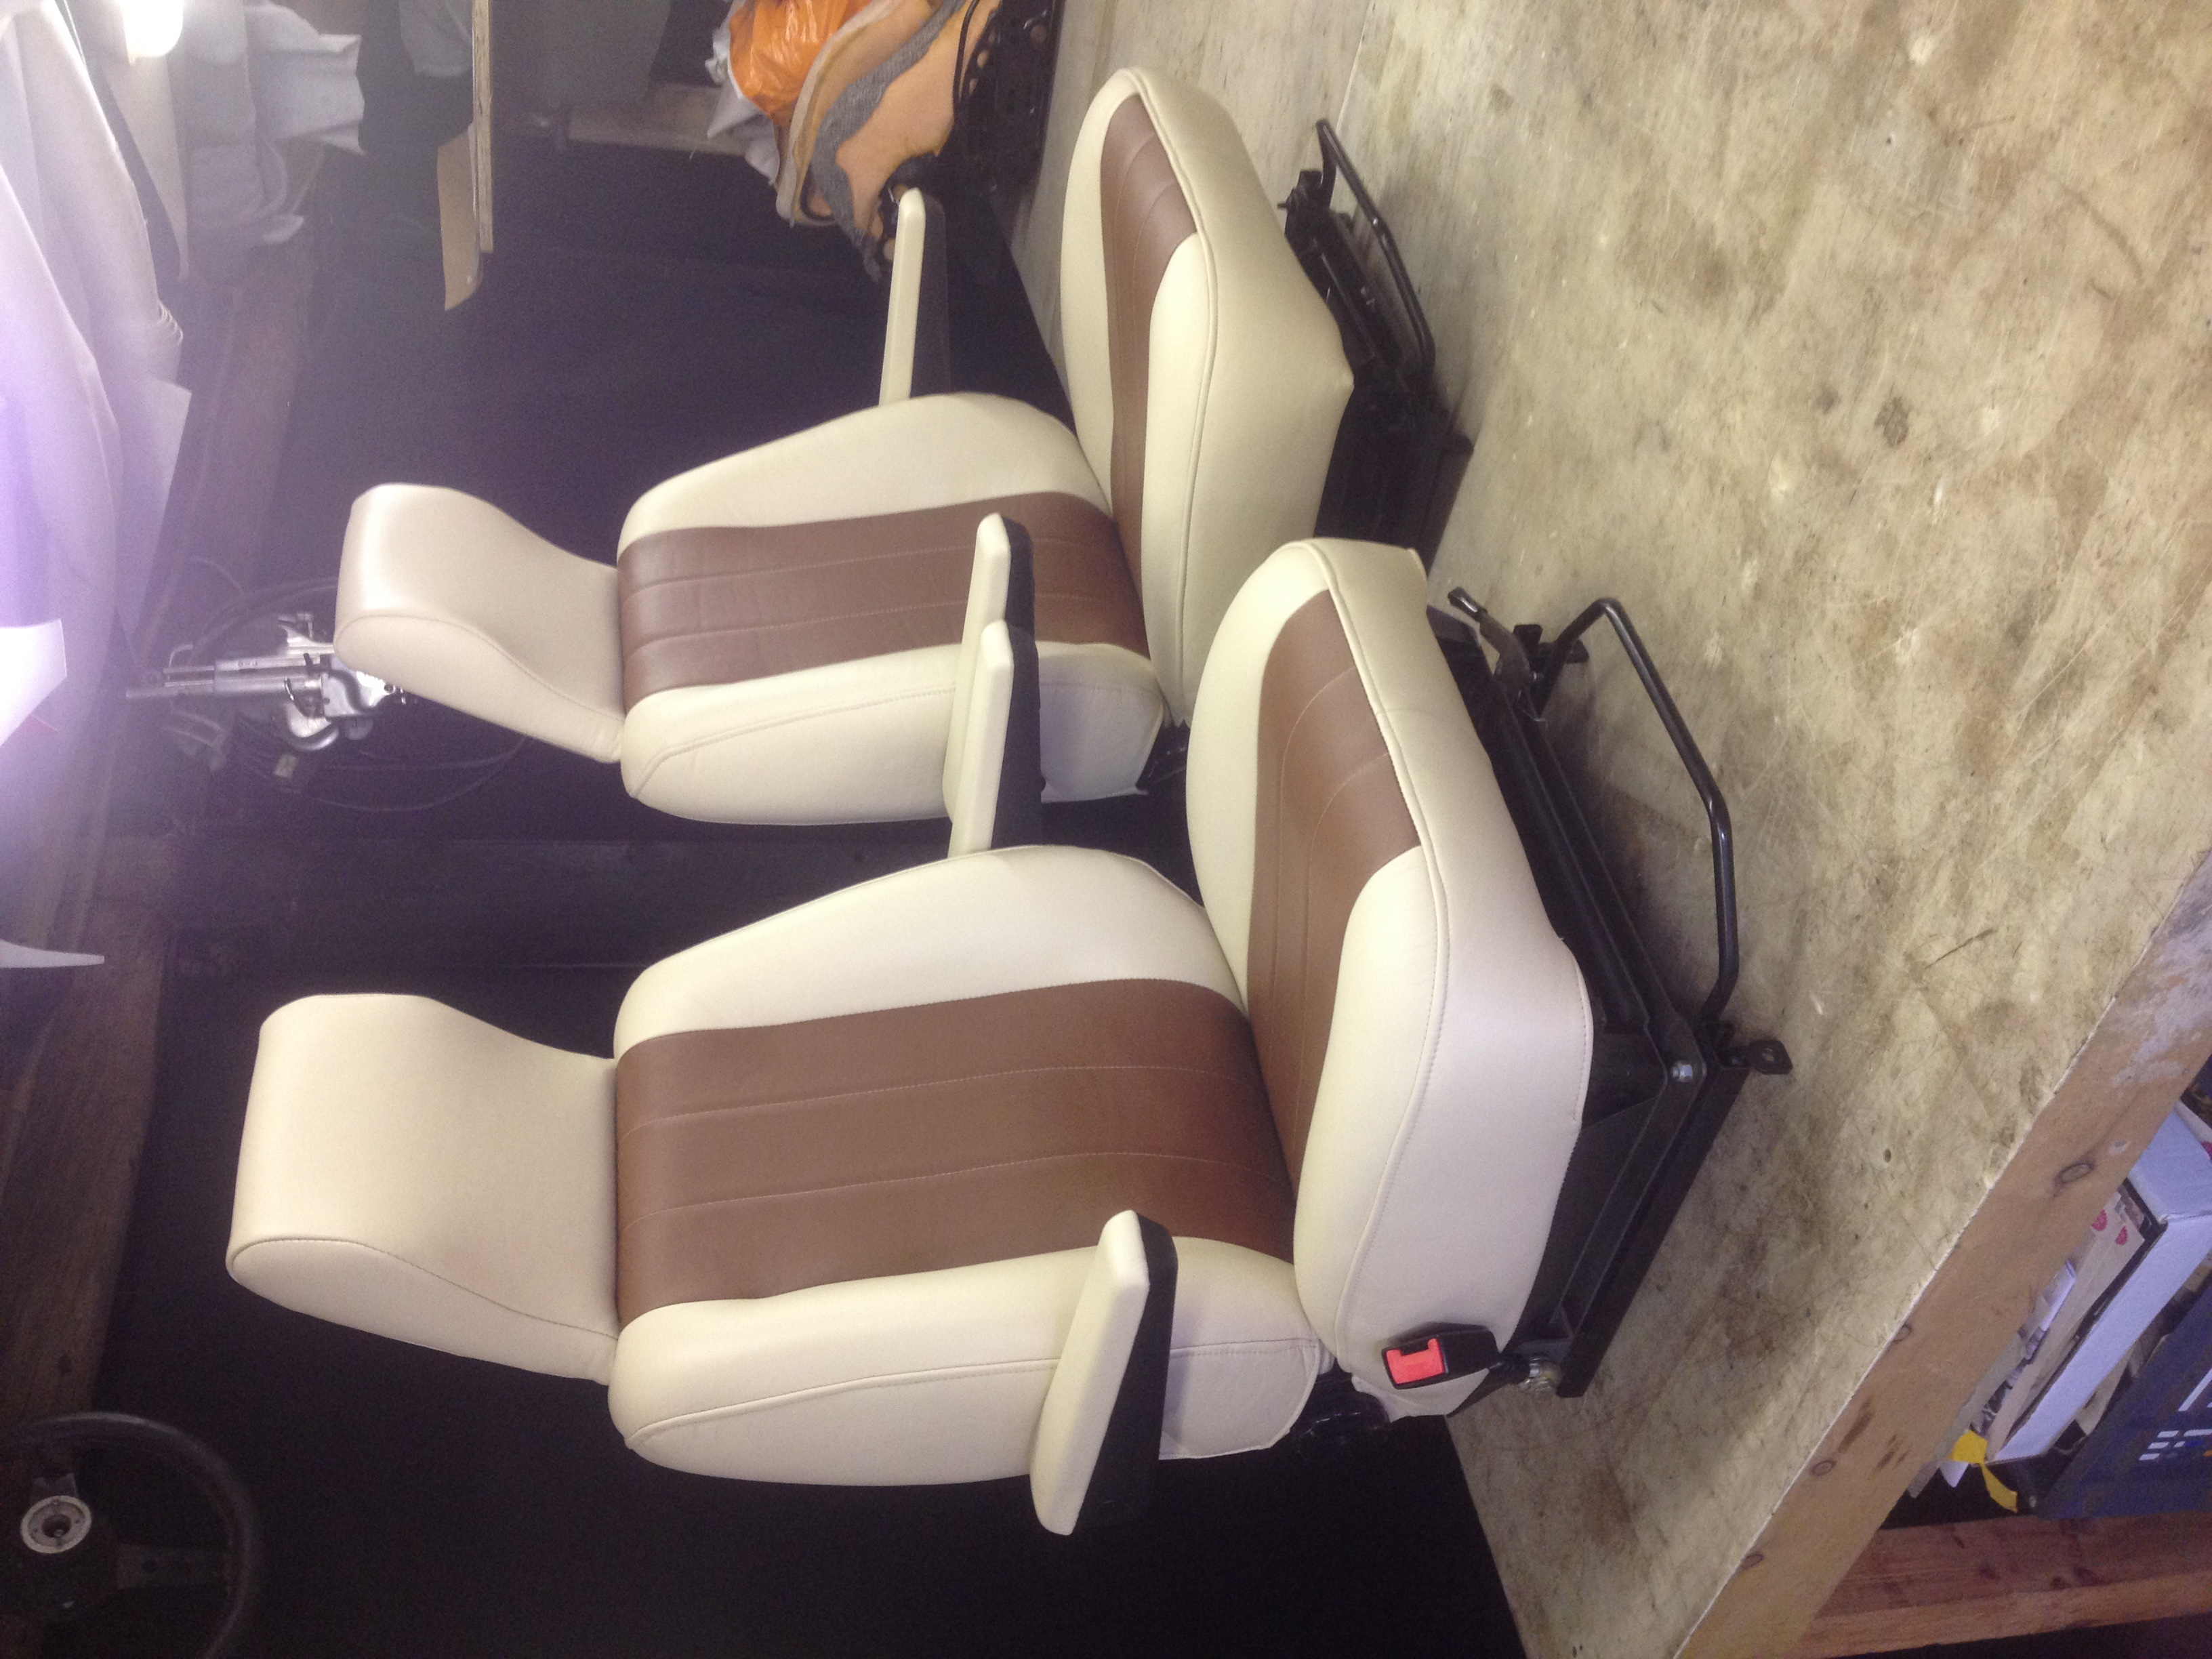 camper van leather seats